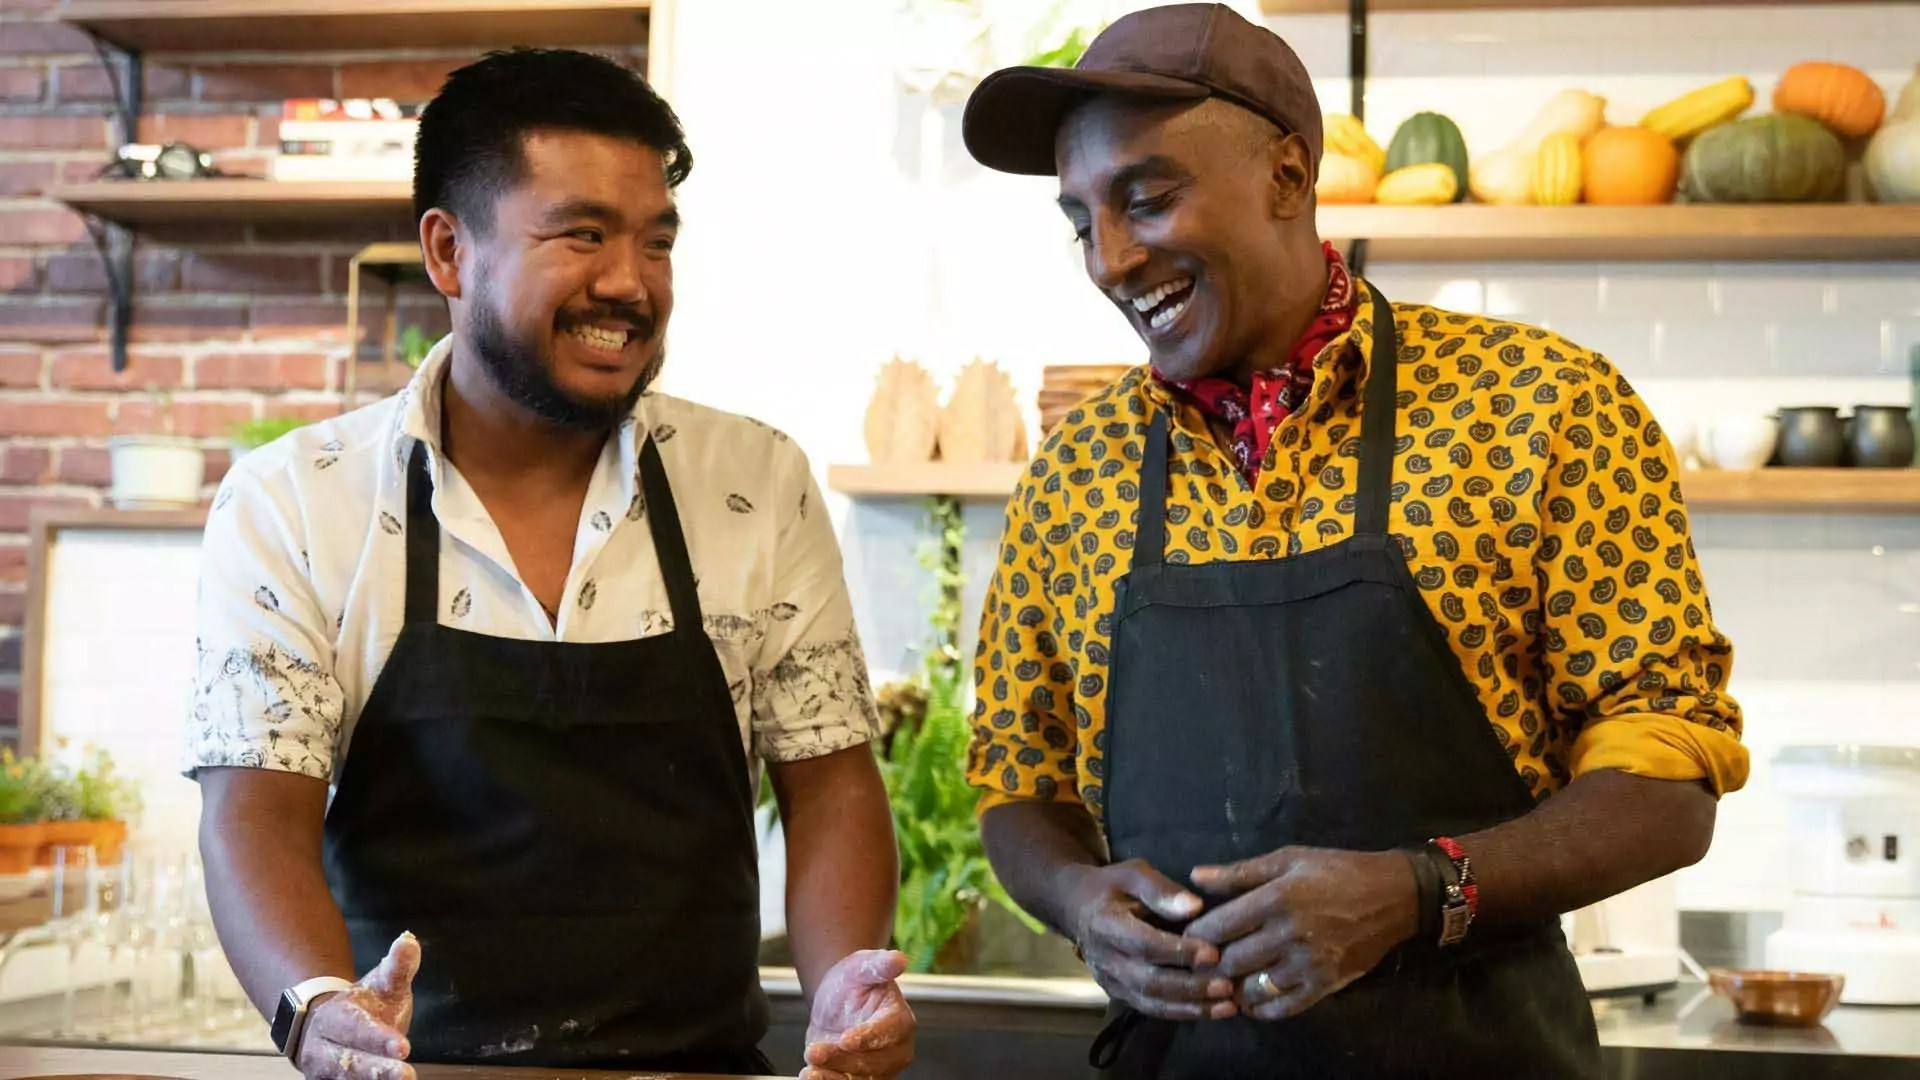 Two people laugh and cook with each other in a kitchen.